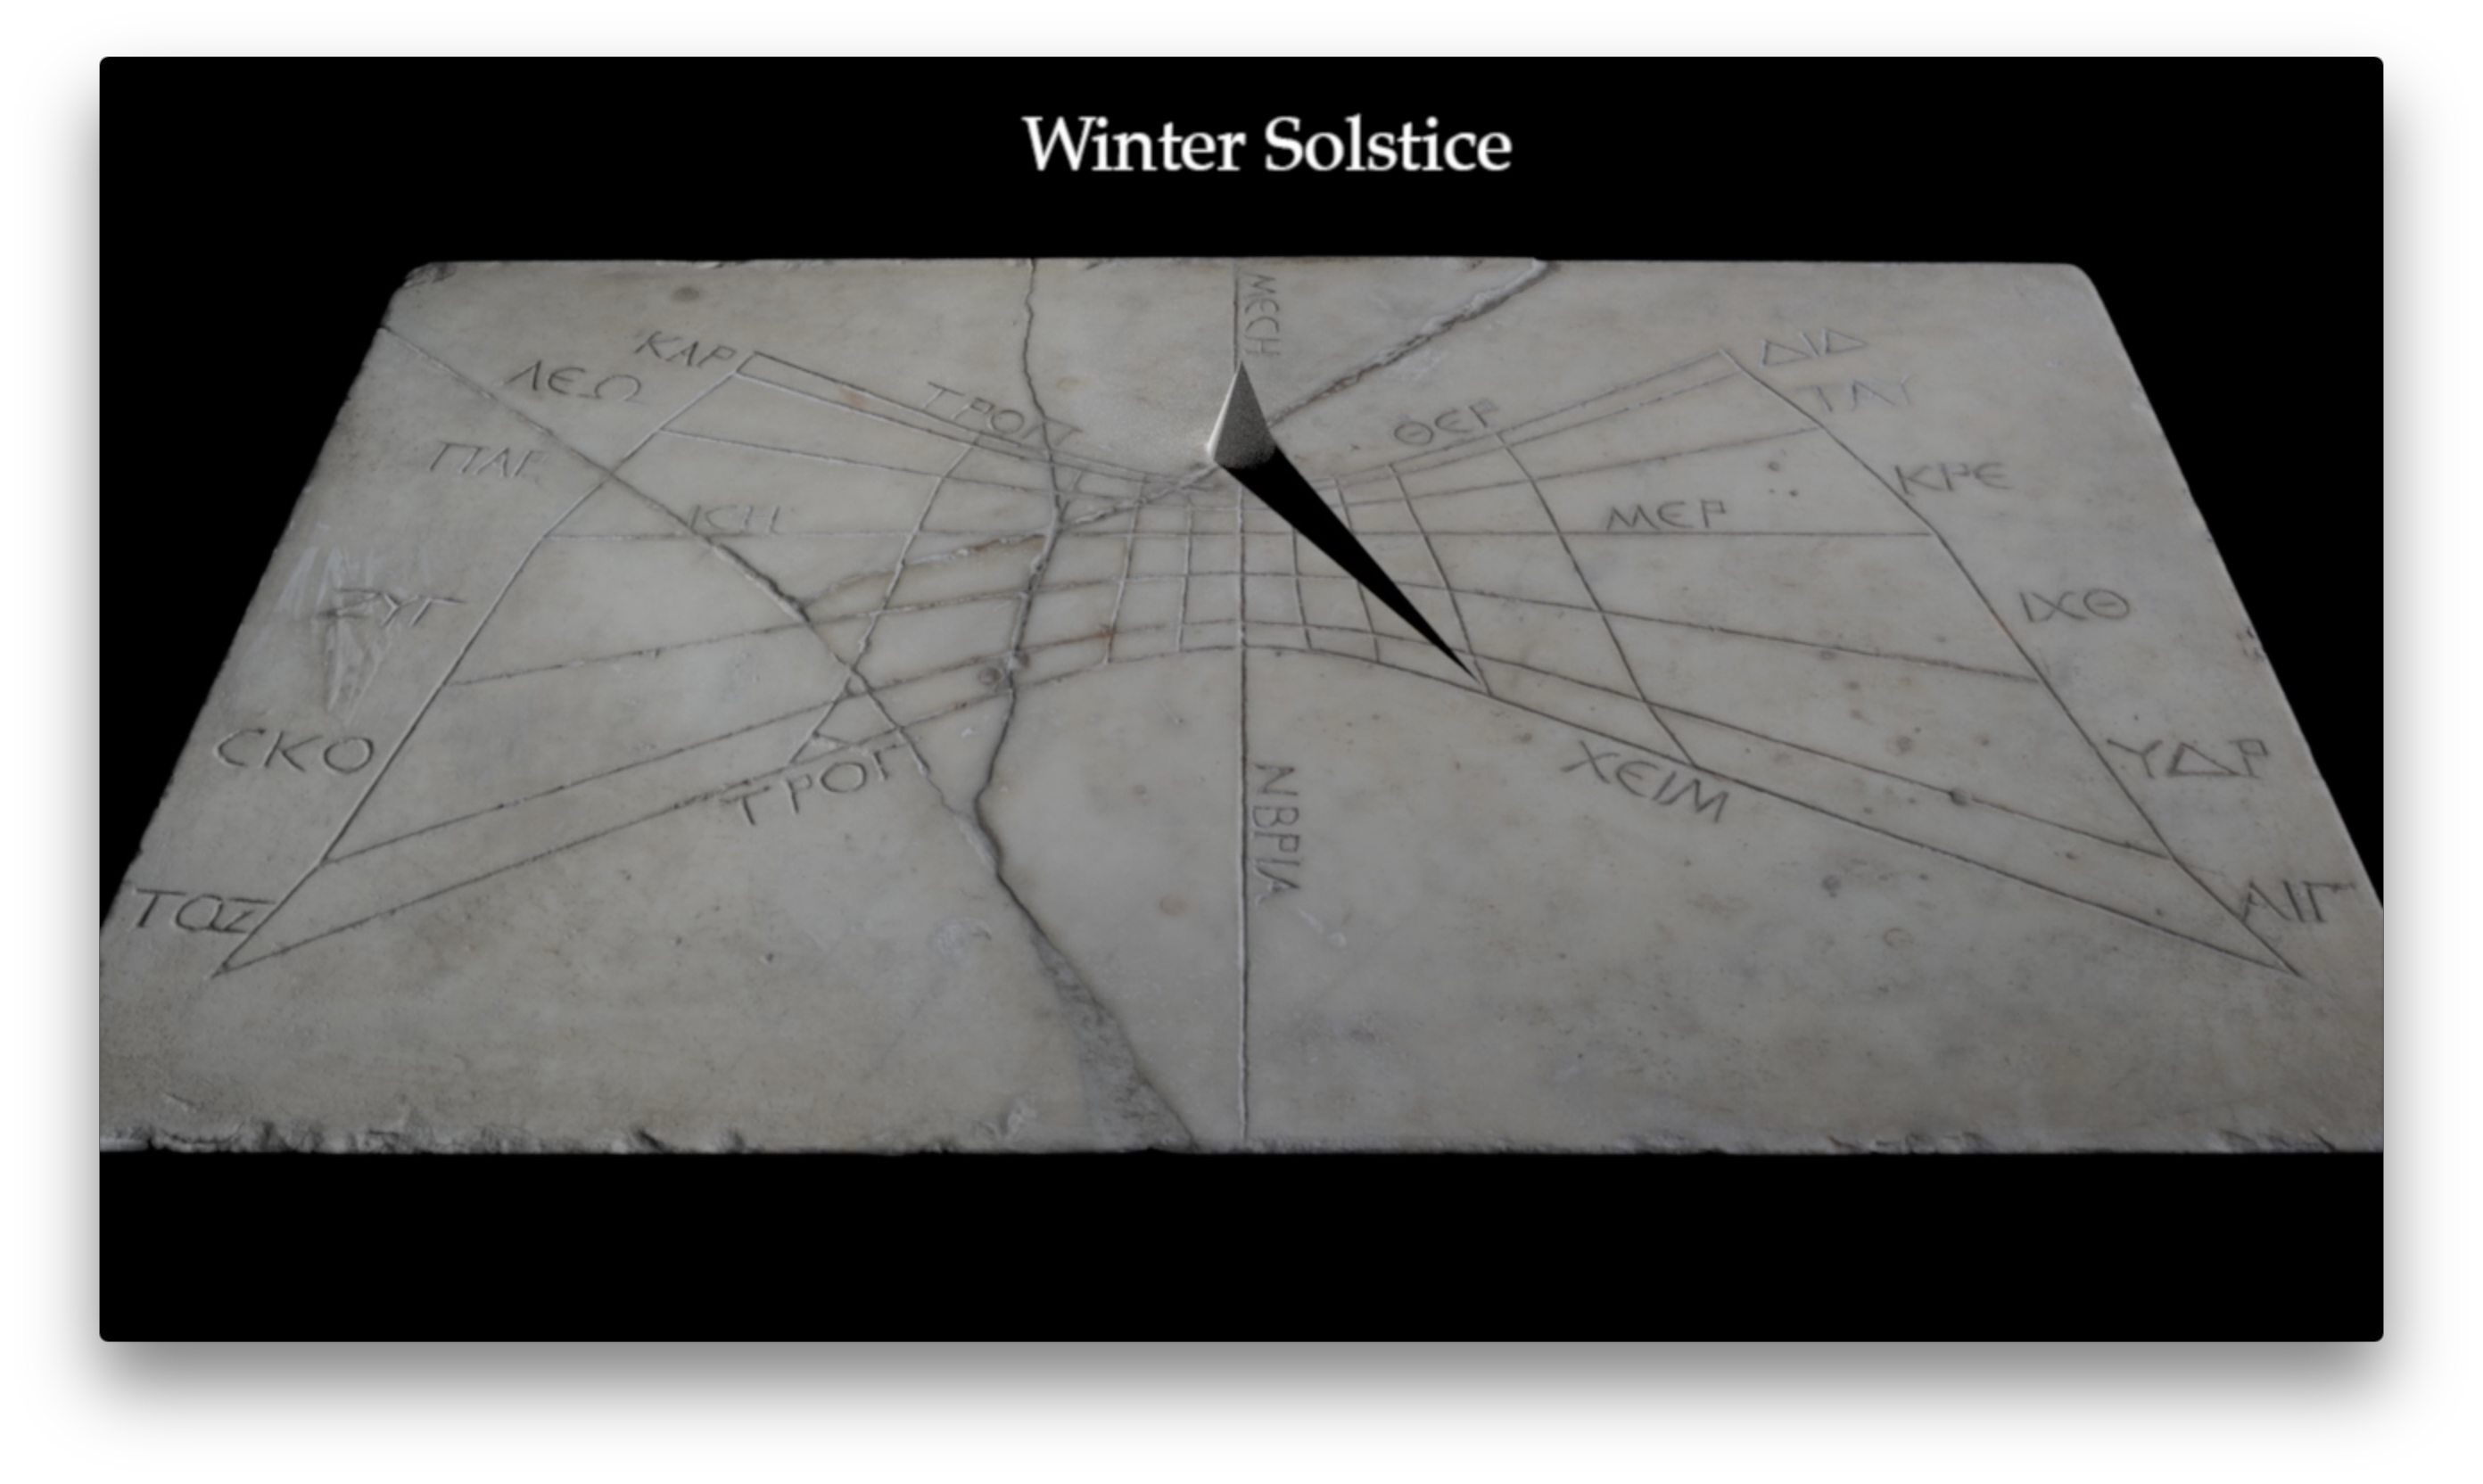 Rendering of shadow on the Pompeii Horizontal Sundial at three Roman hours before midday on the winter solstice, the shortest day of the year when the sun is low and shadows are long. The shadow is cast towards the lower right part of the sundial.